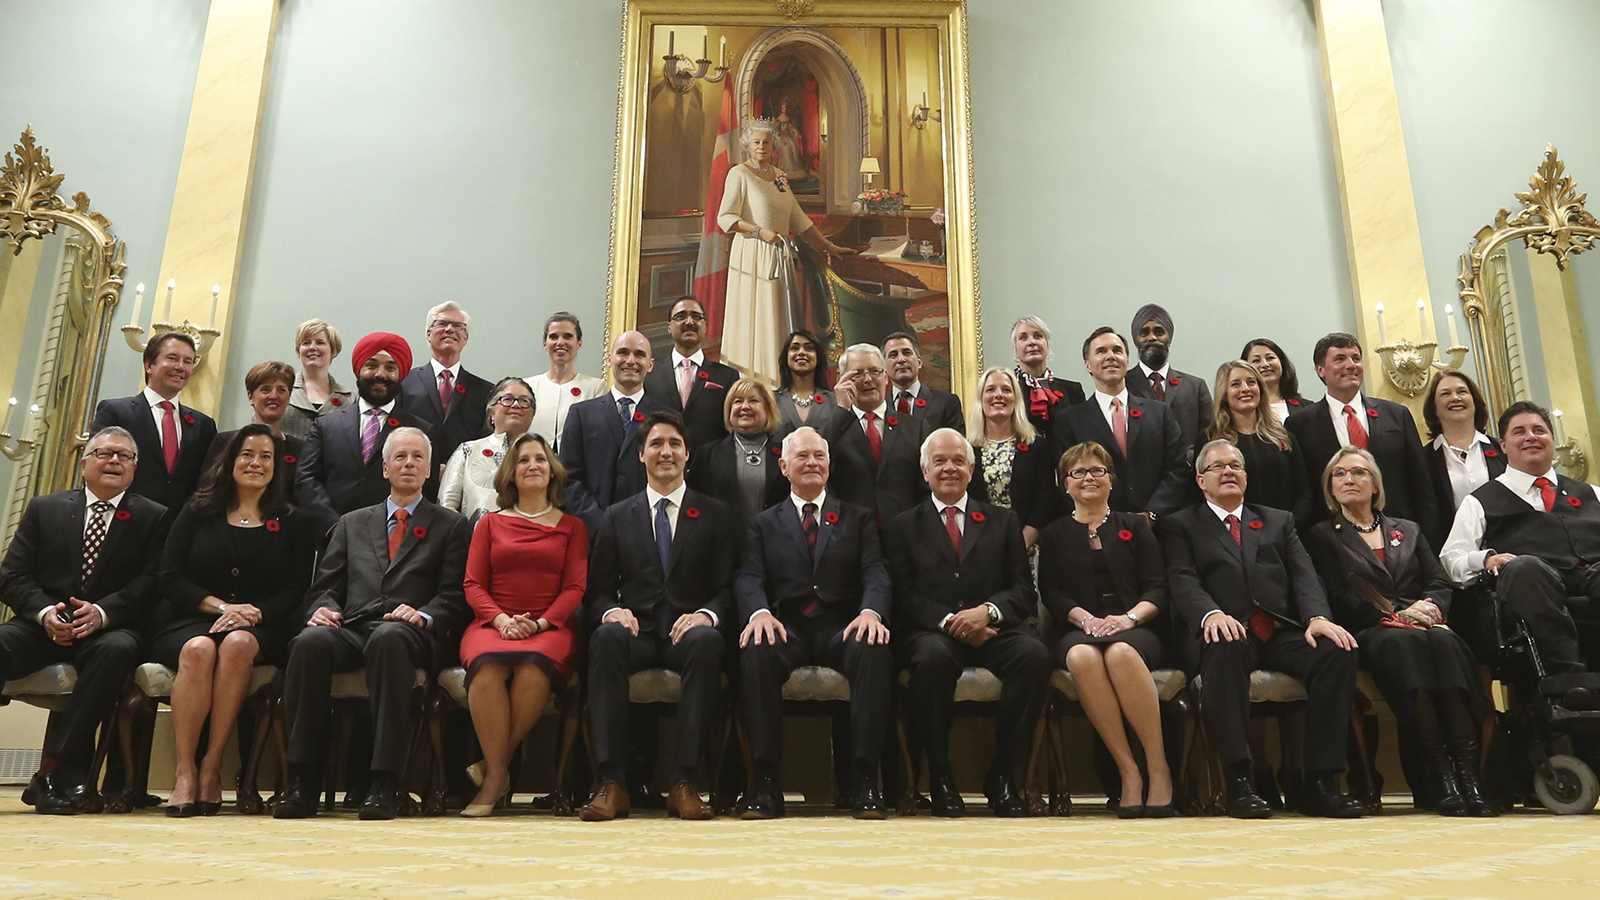 Cabinet shuffle: what does this mean for pro-lifers?